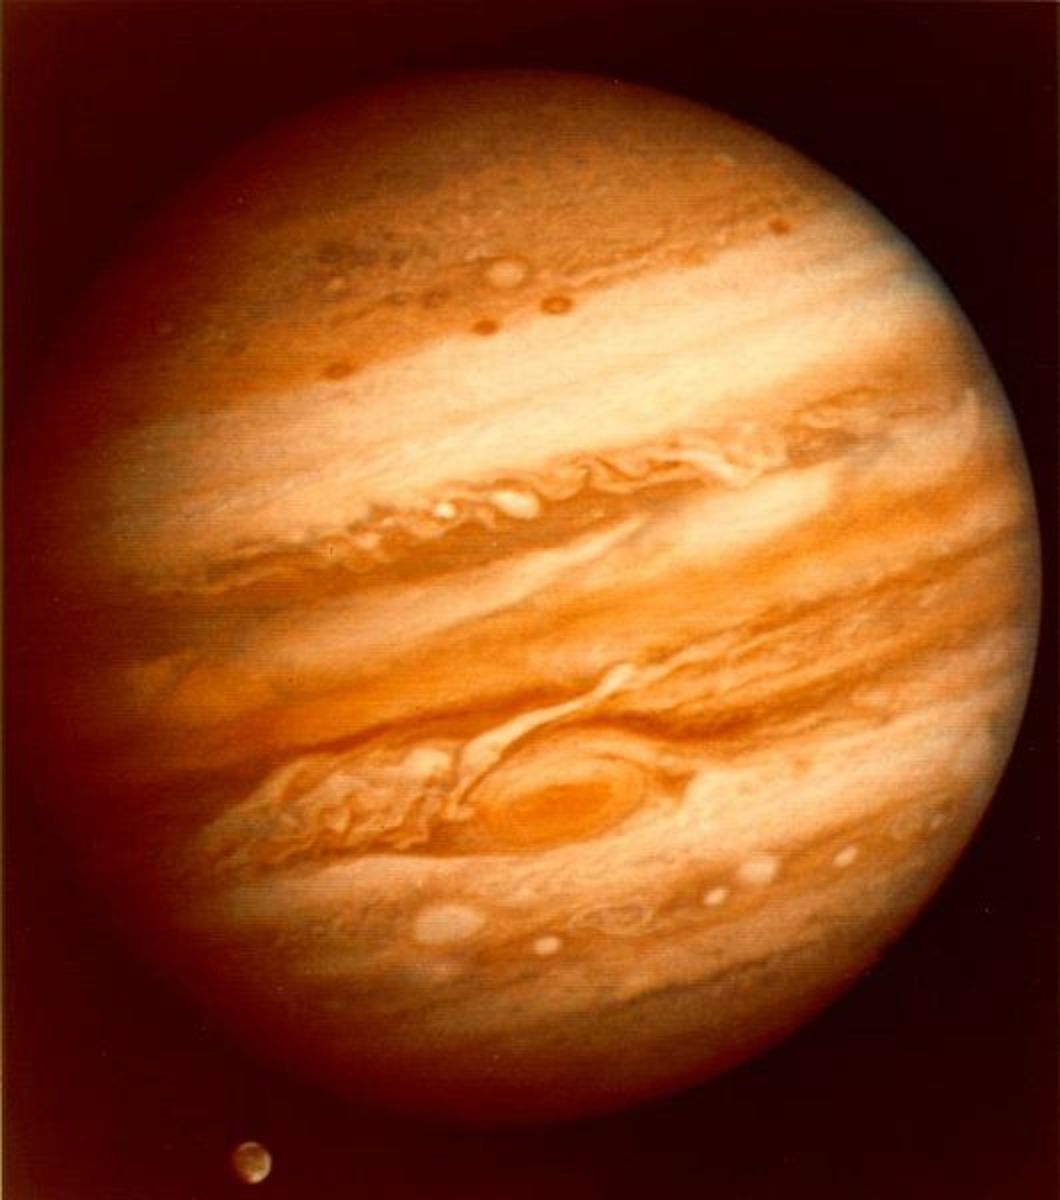 Jupiter, named after the King of the gods because it is the largest of the planets.